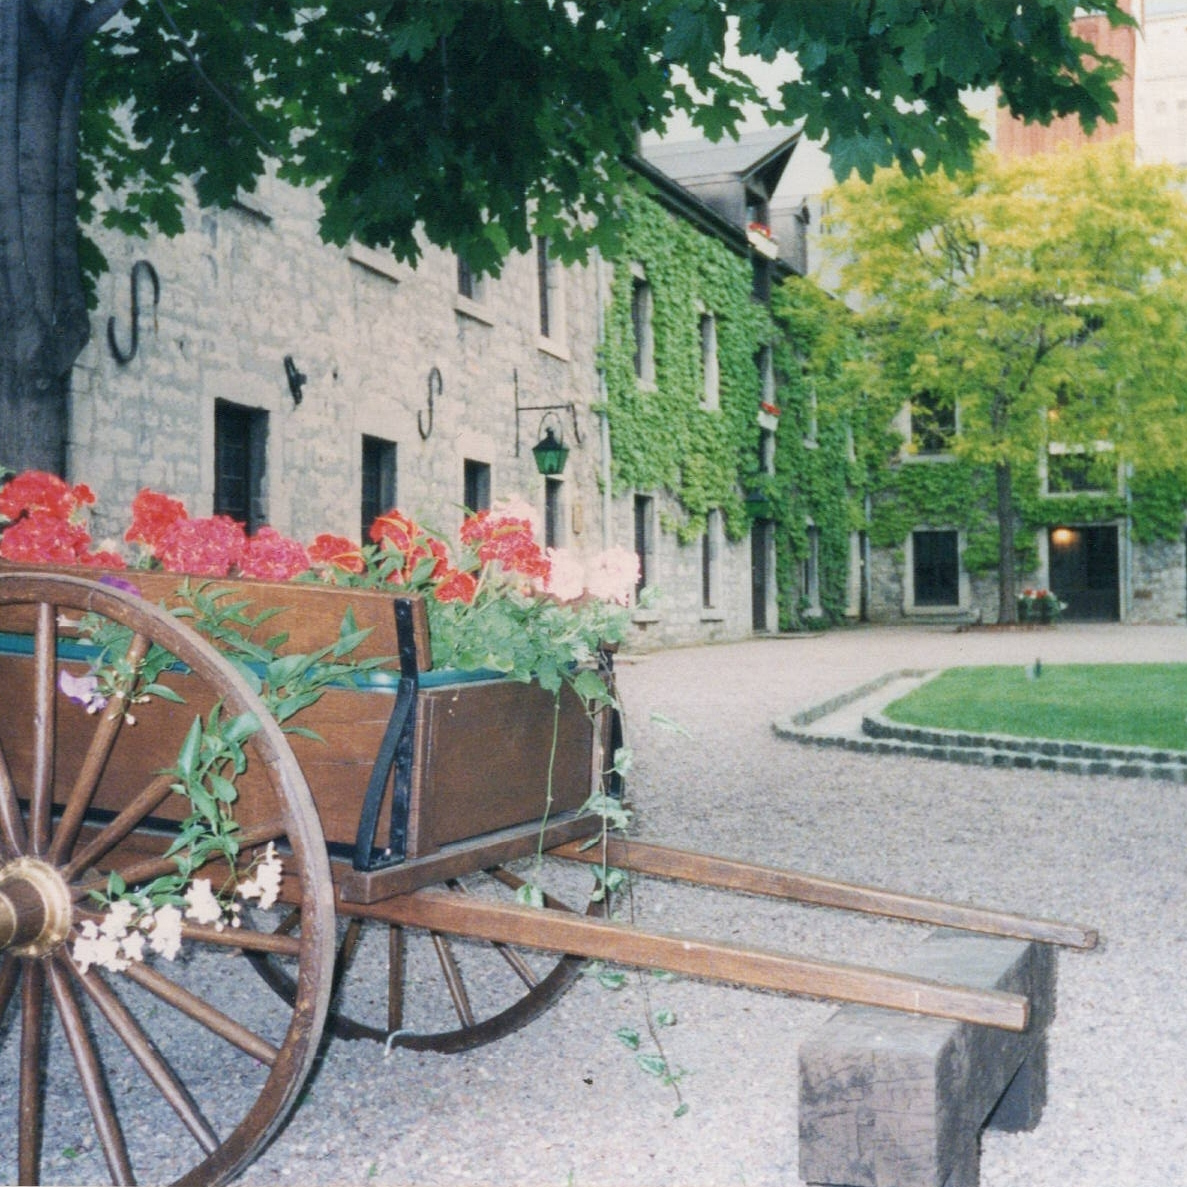 red flowers in wooden wagon in a courtyard with ivy on walls